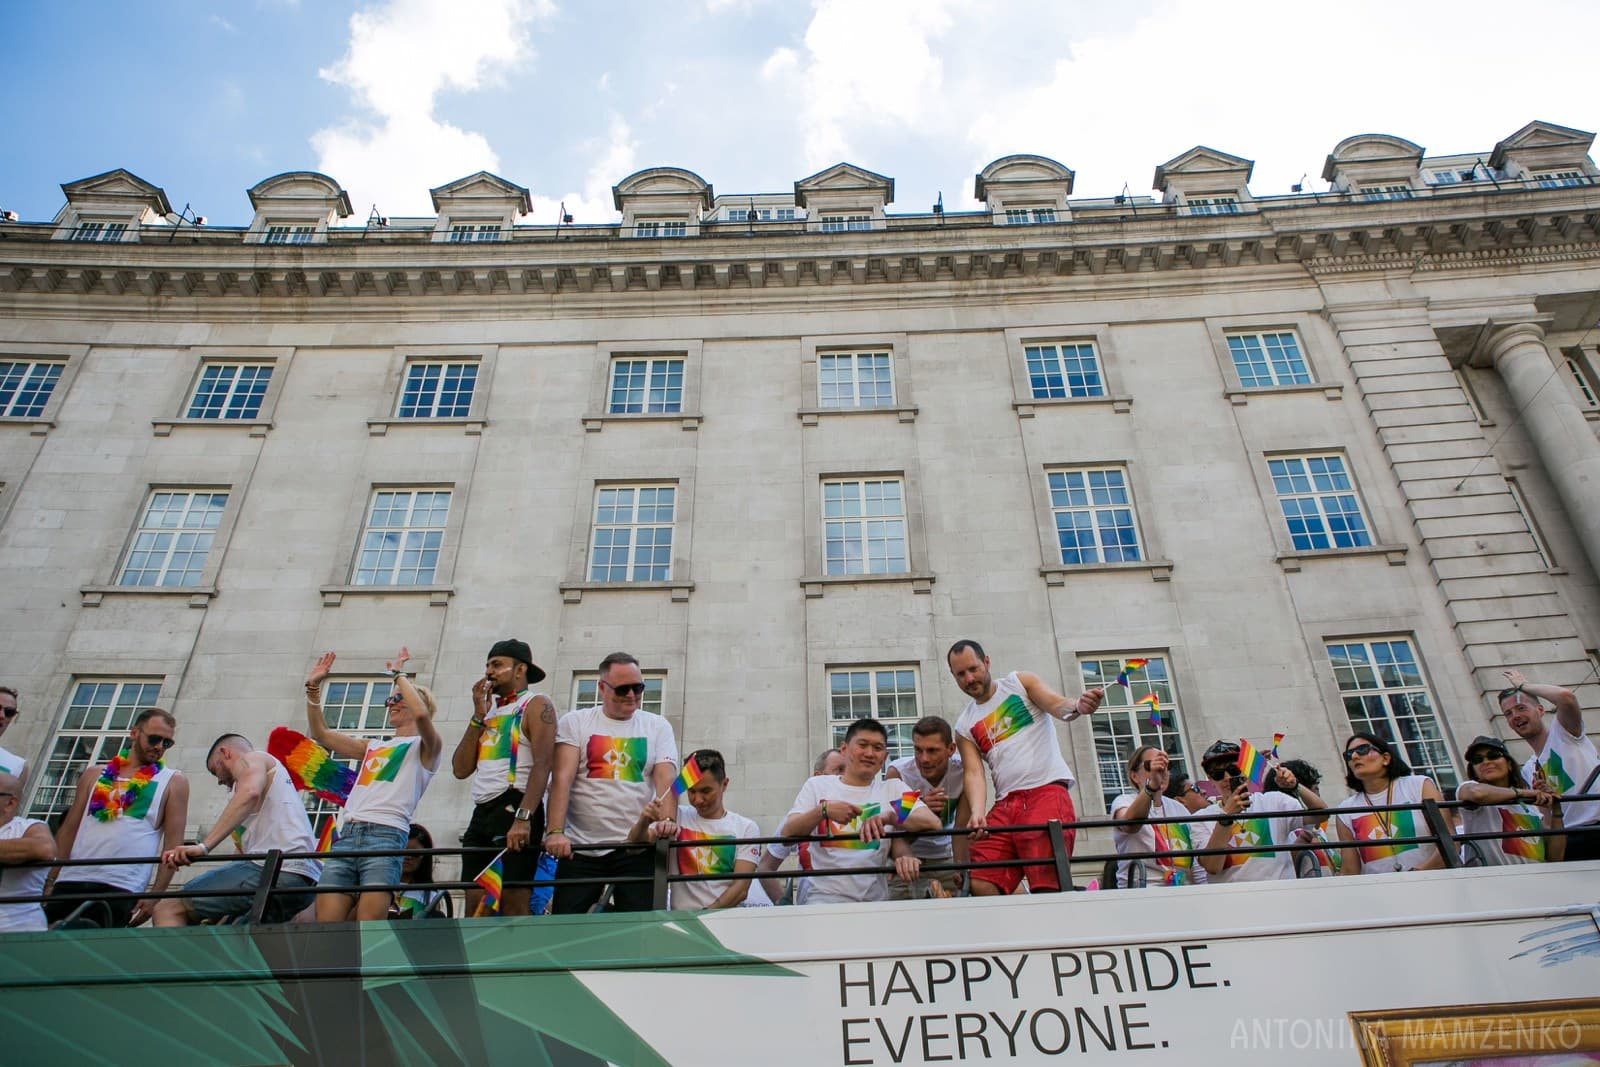 HSBC bank bus at London Pride 2018